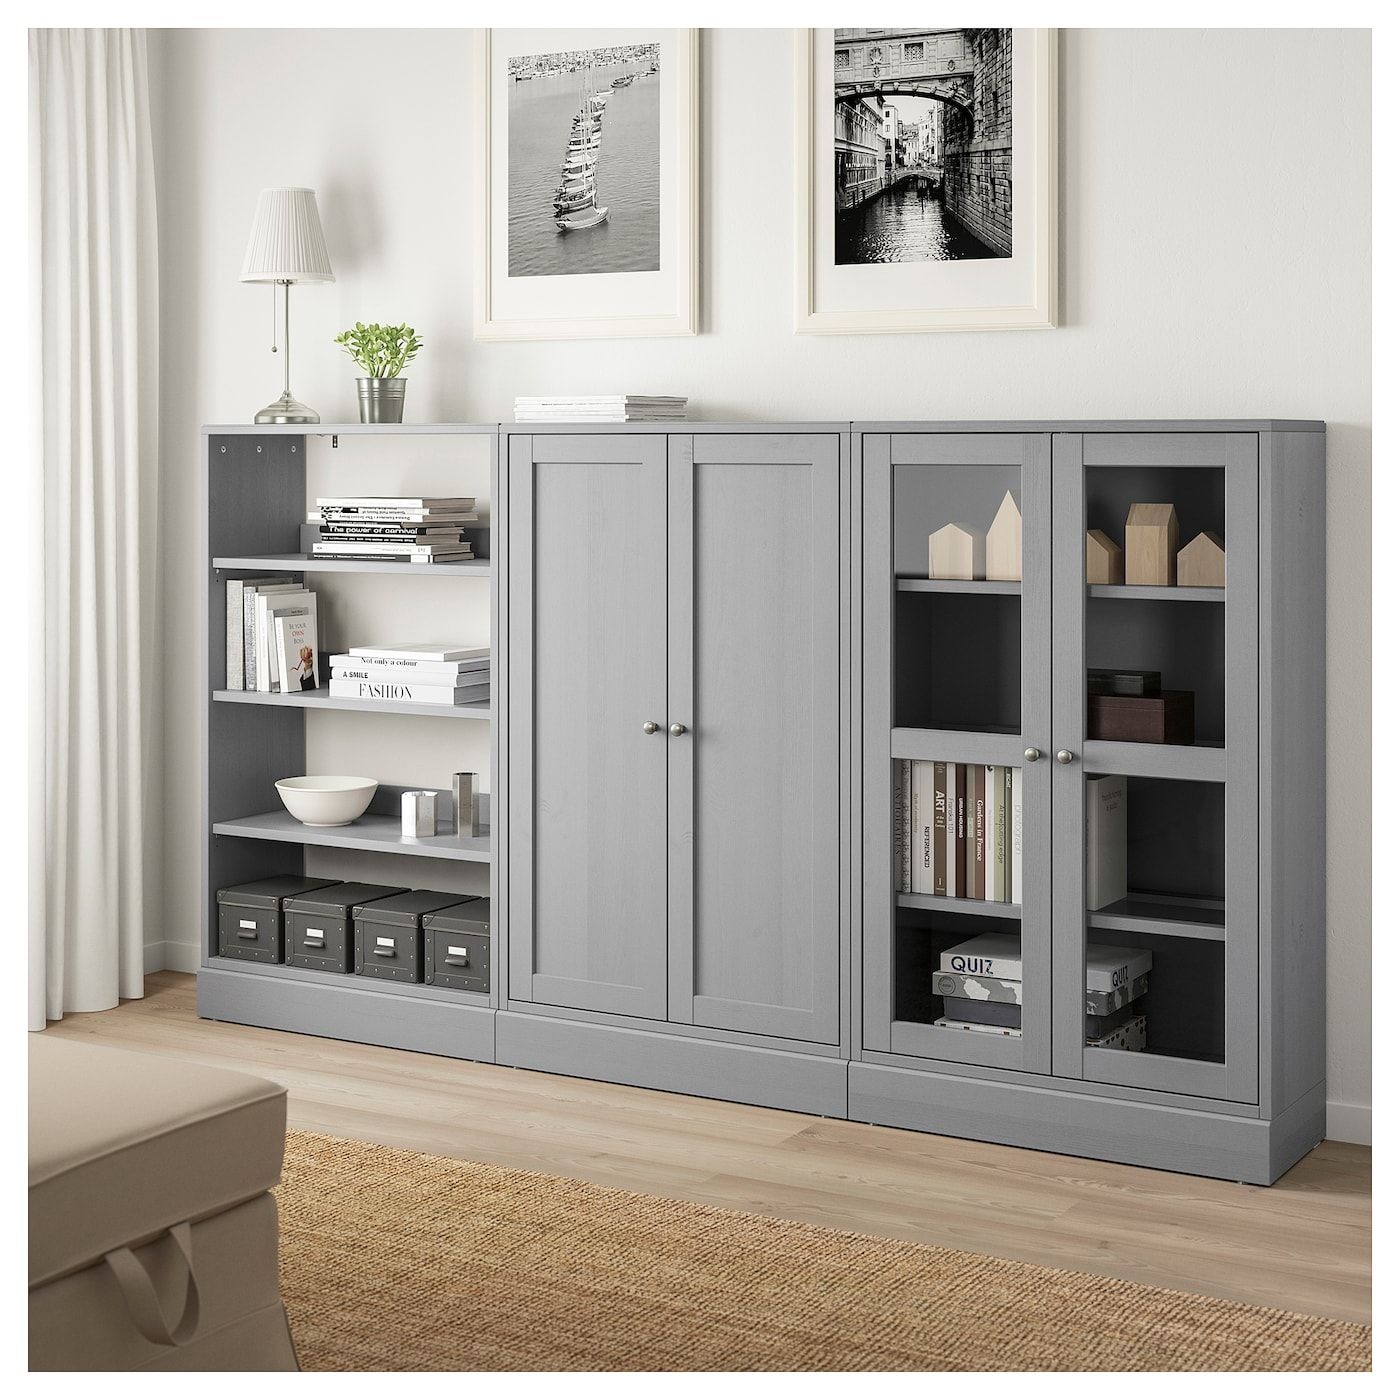 Havsta Storage Combination W Glass Doors Gray 95 5 8x14 5 8x52 3 4 243x37x134 Cm Living Room Storage Cabinet Dining Room Storage Ikea Living Room